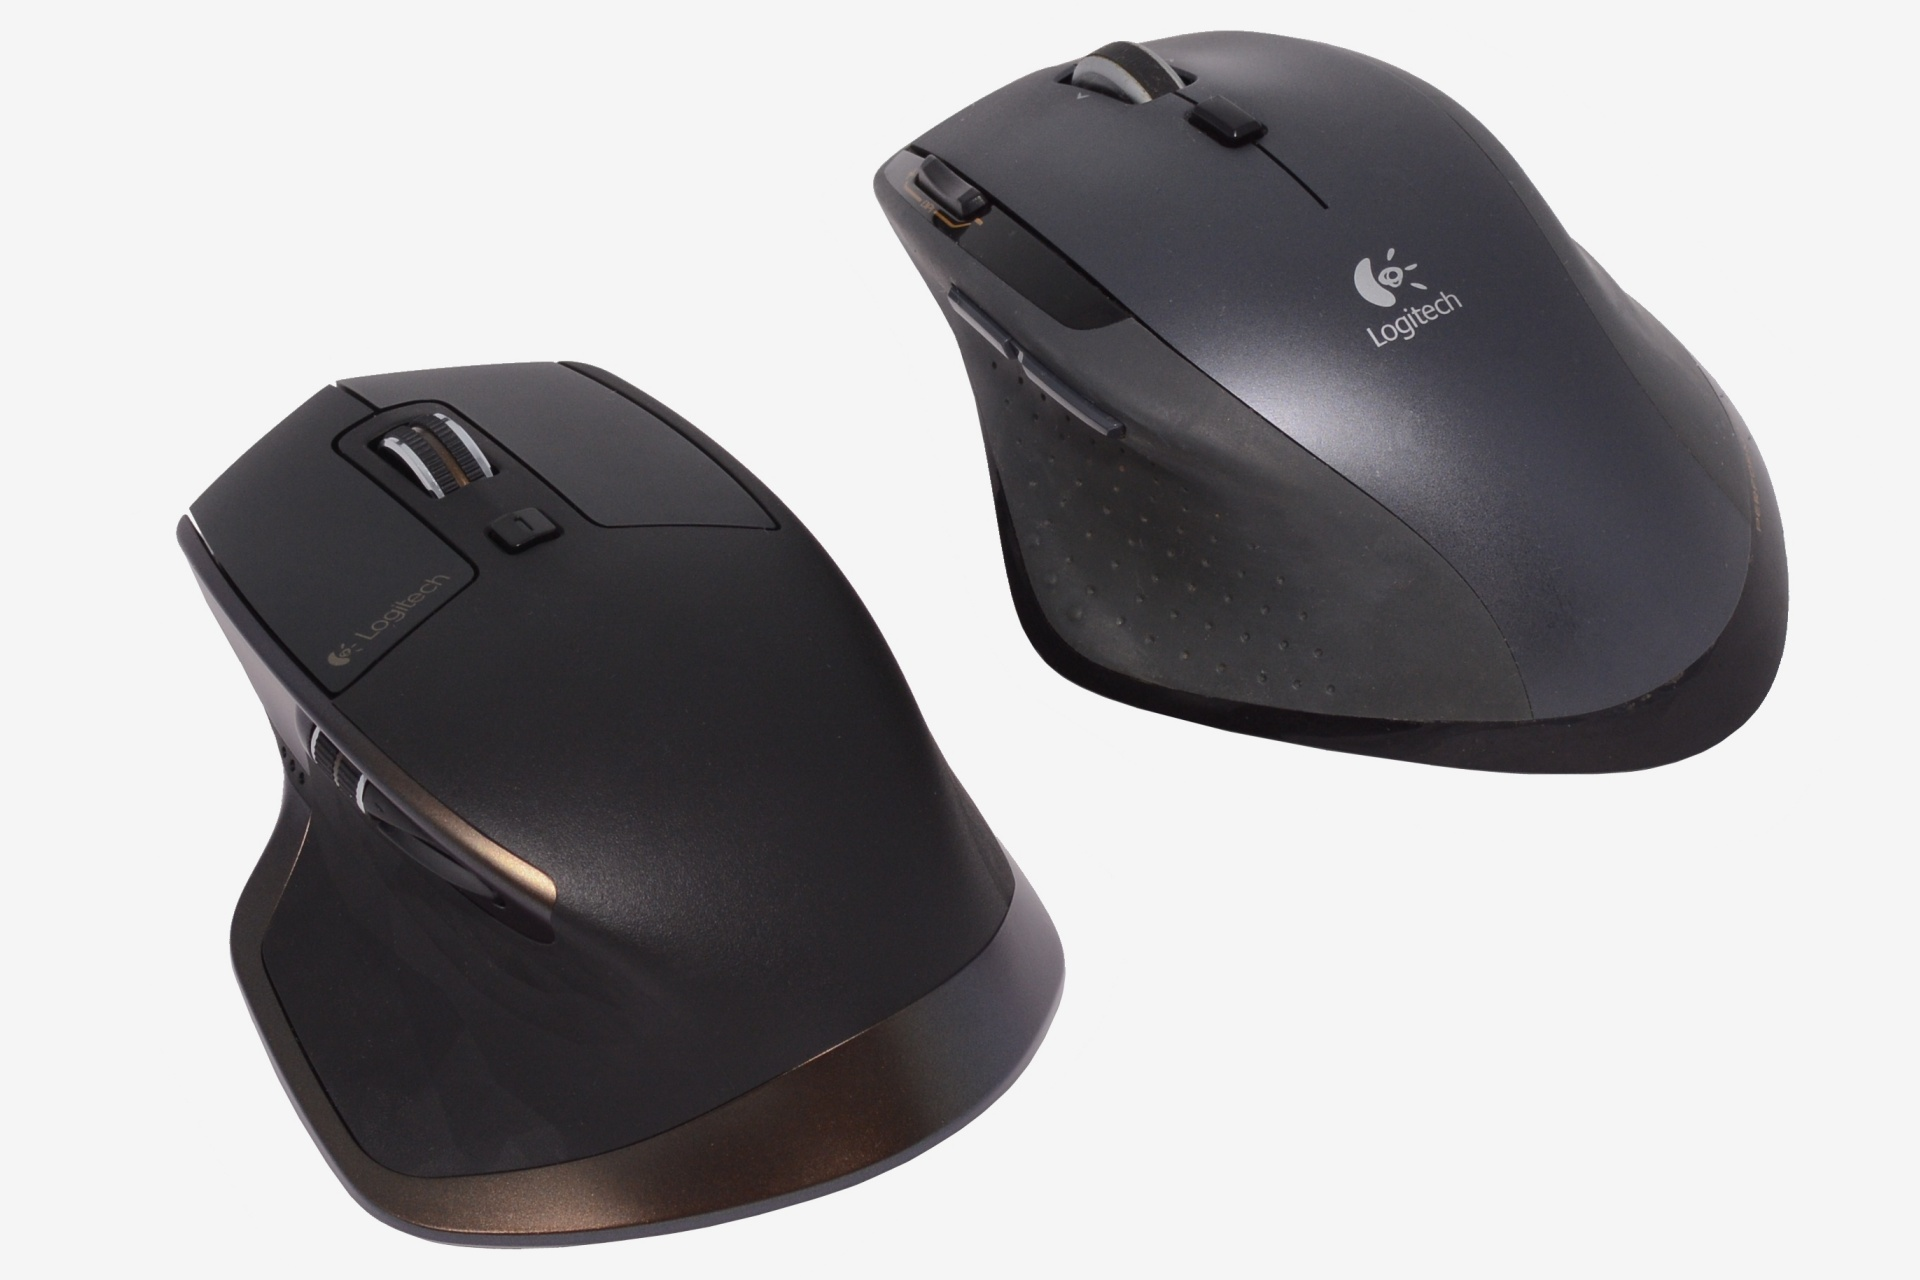 8f808a99af7 Logitech MX Master Wireless Mouse Review - TechSpot